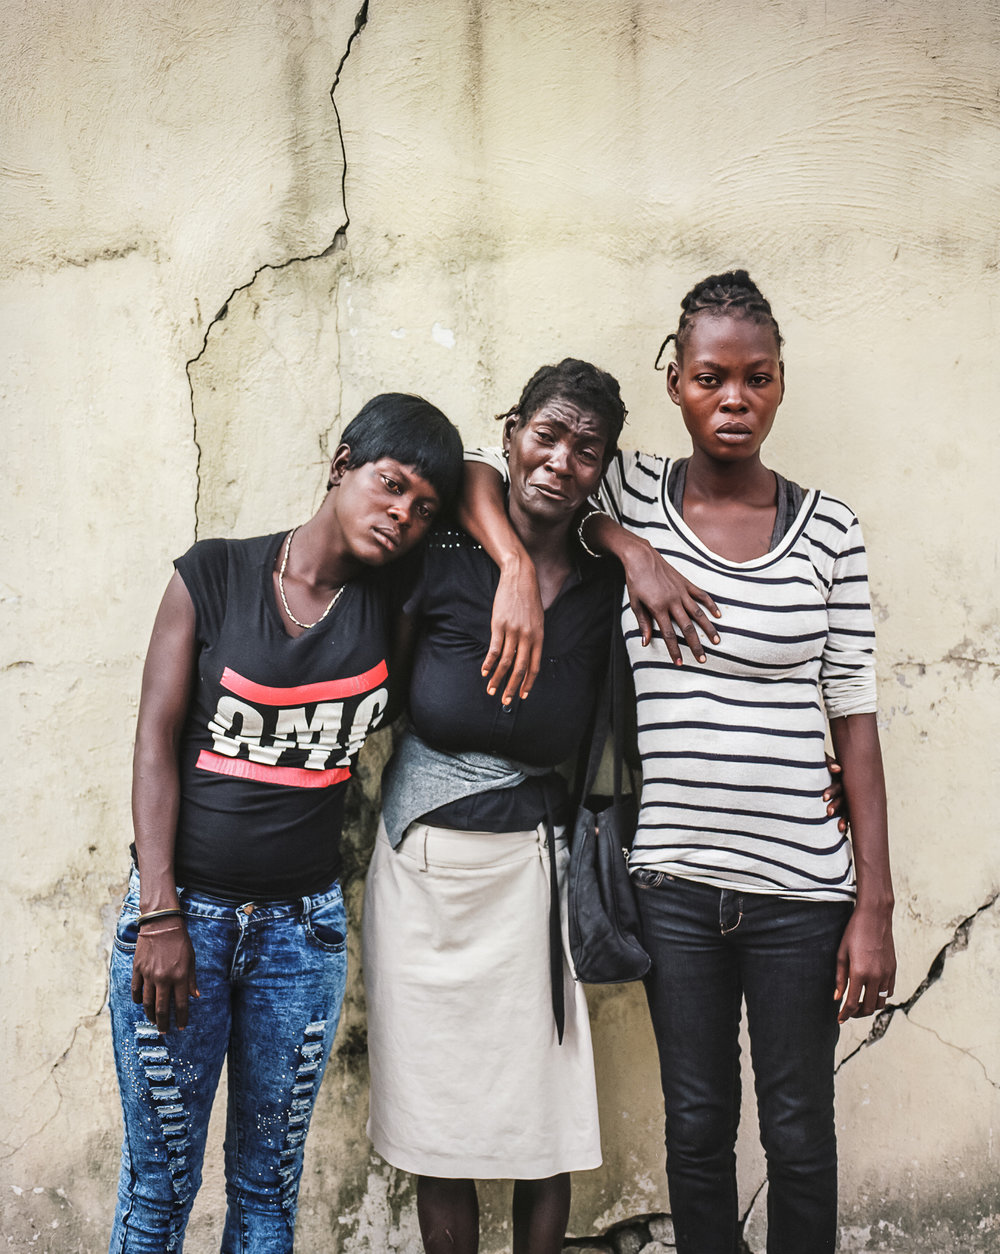 Betty Nicolas, 23, Claudiani Fonrose, and Bertha Nicolas, 20, from left, pose for a picture on Monday, December 15, 2014 in Port-au-Prince, Haiti. They are the sisters and mother of Jolin Nicolas, 19, who was killed while participating in an anti-government protest on December 13.